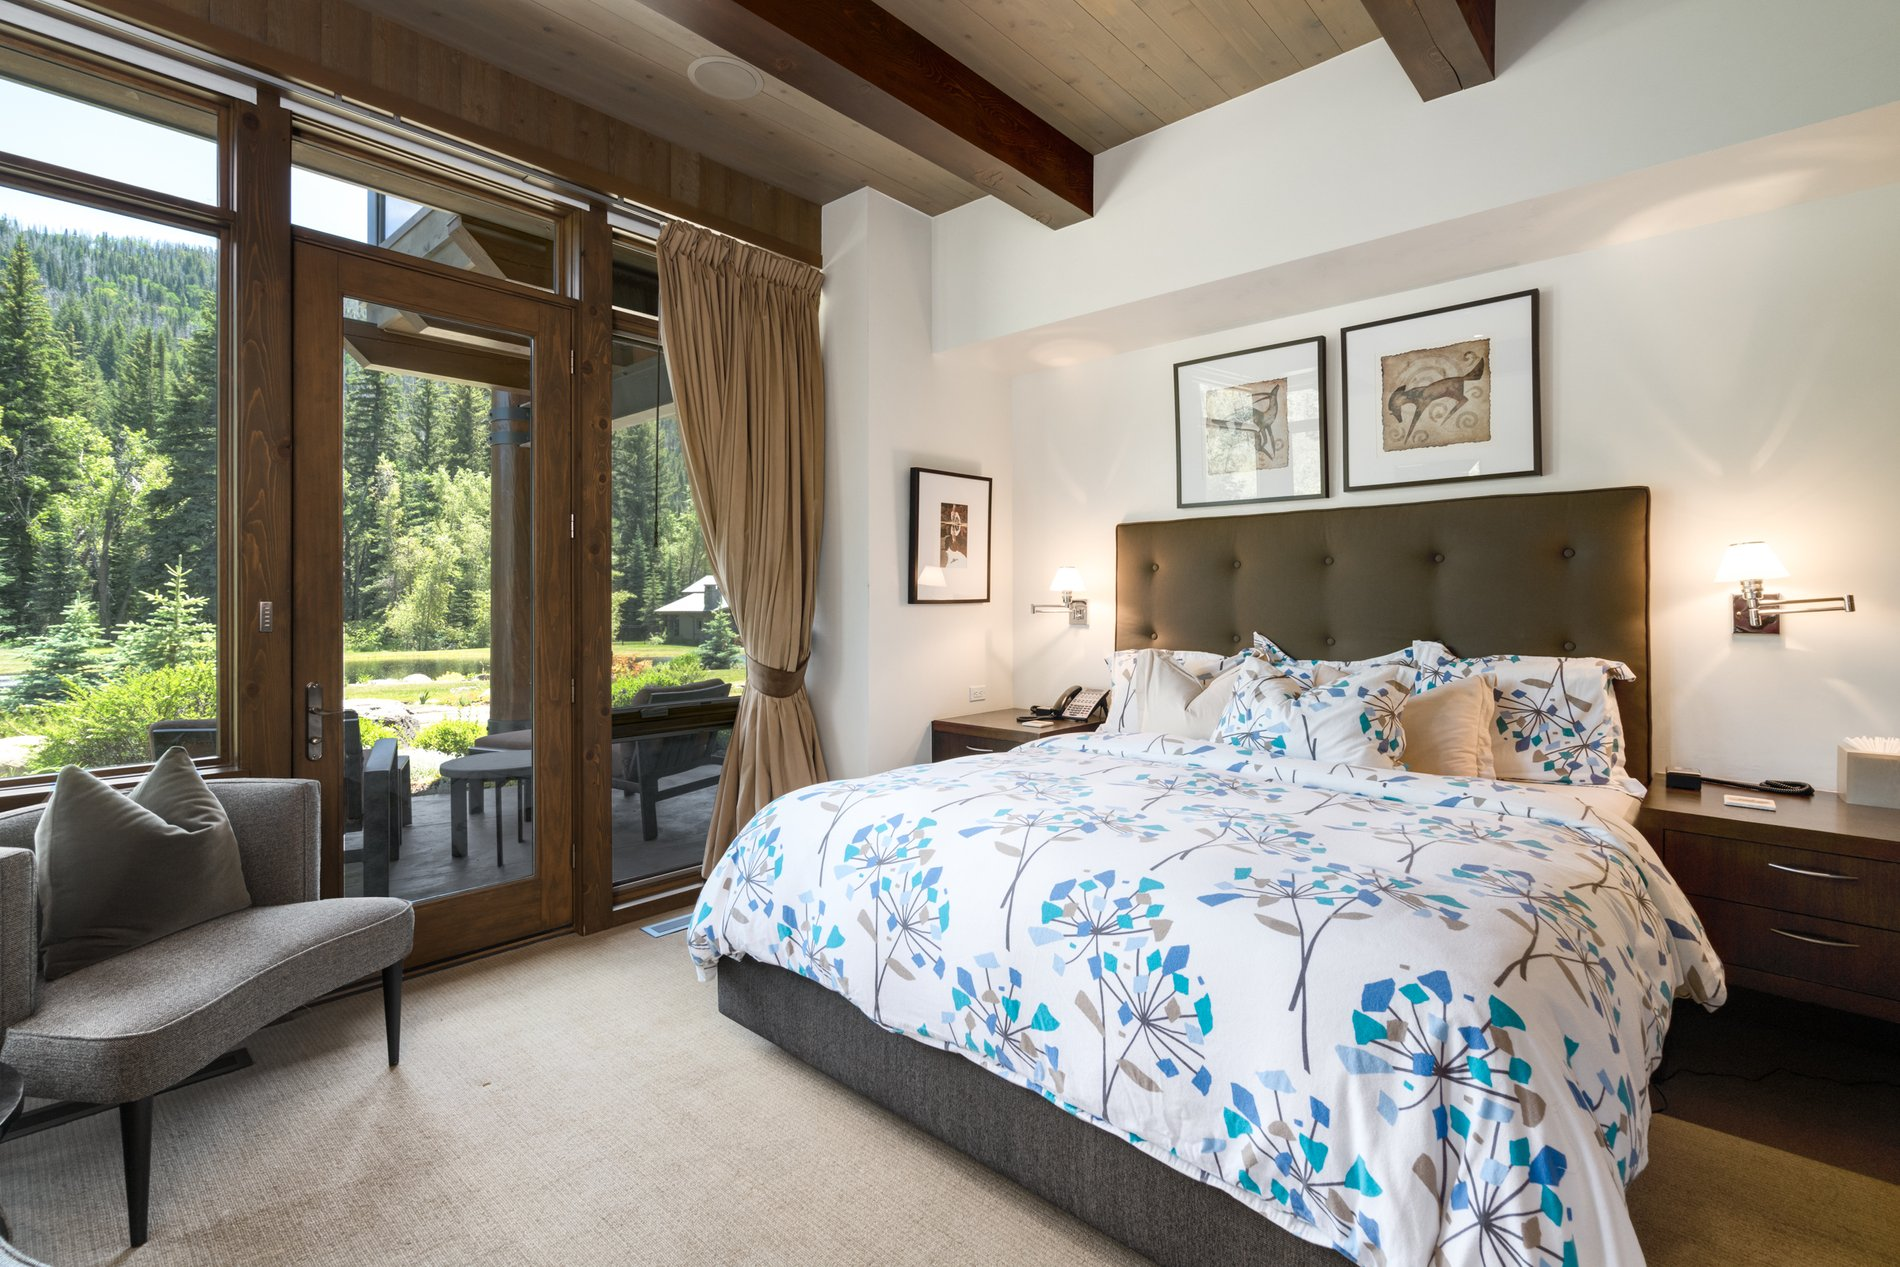 Beautiful guest bedroom with walkout patio area, raised ceilings, exposed timber beams and a wood ceiling.